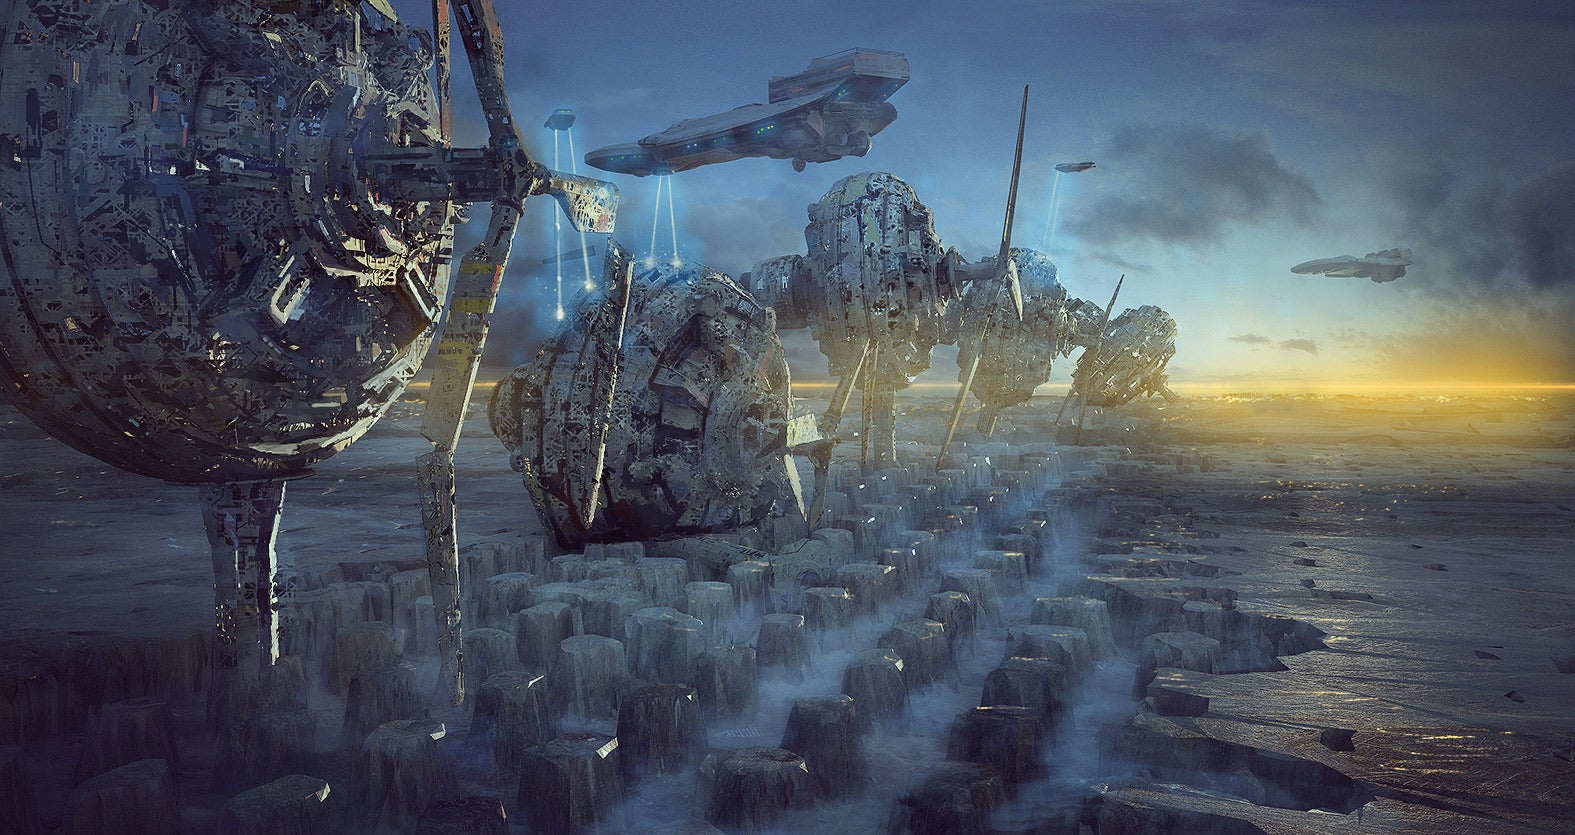 Stunning sci-fi concept sketches are actually 3D renders